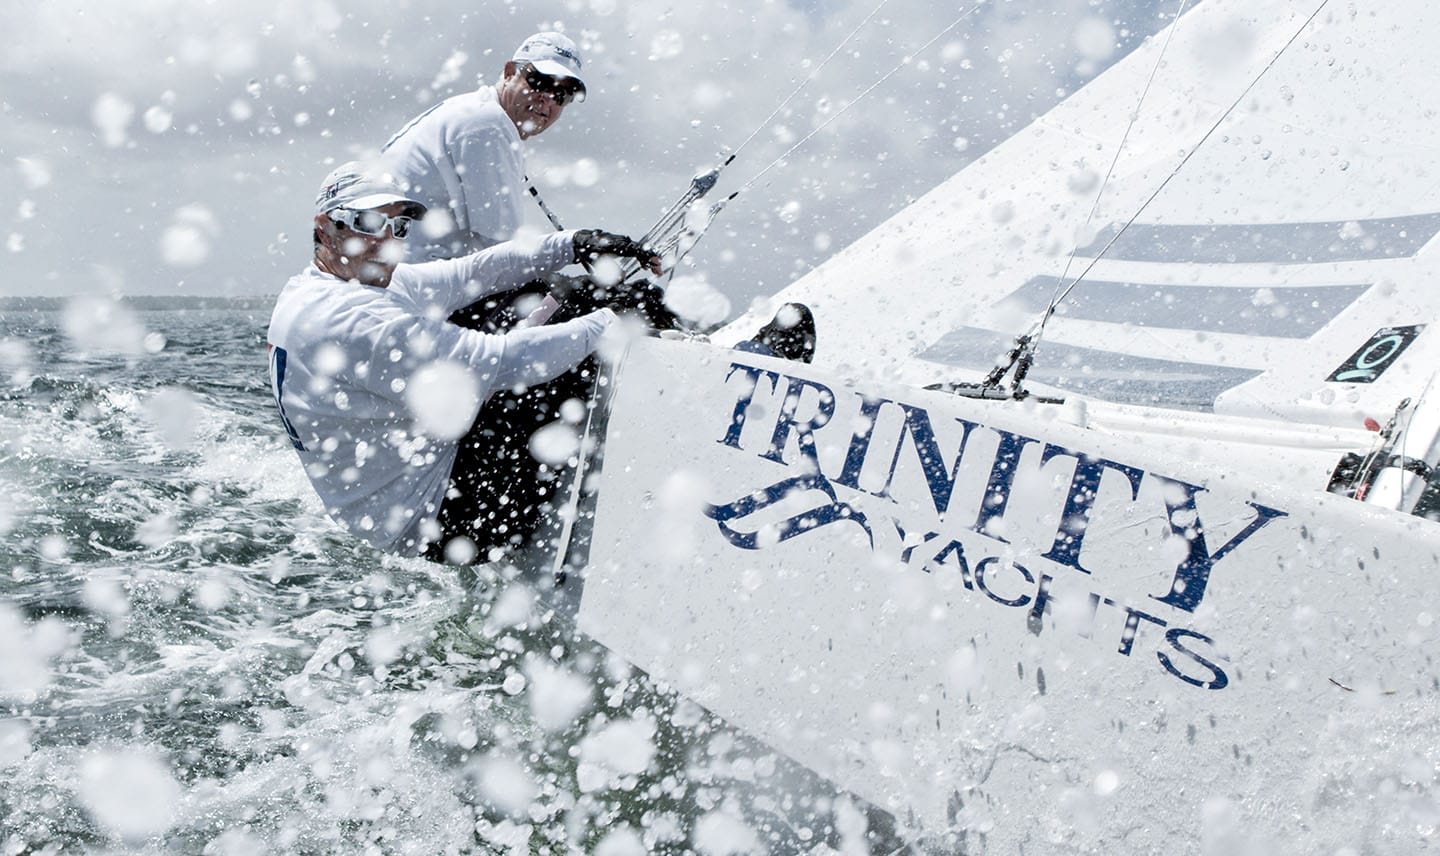 Two Middle Aged Men in White Sailing Mid Splash Sailing Trinity Yachts